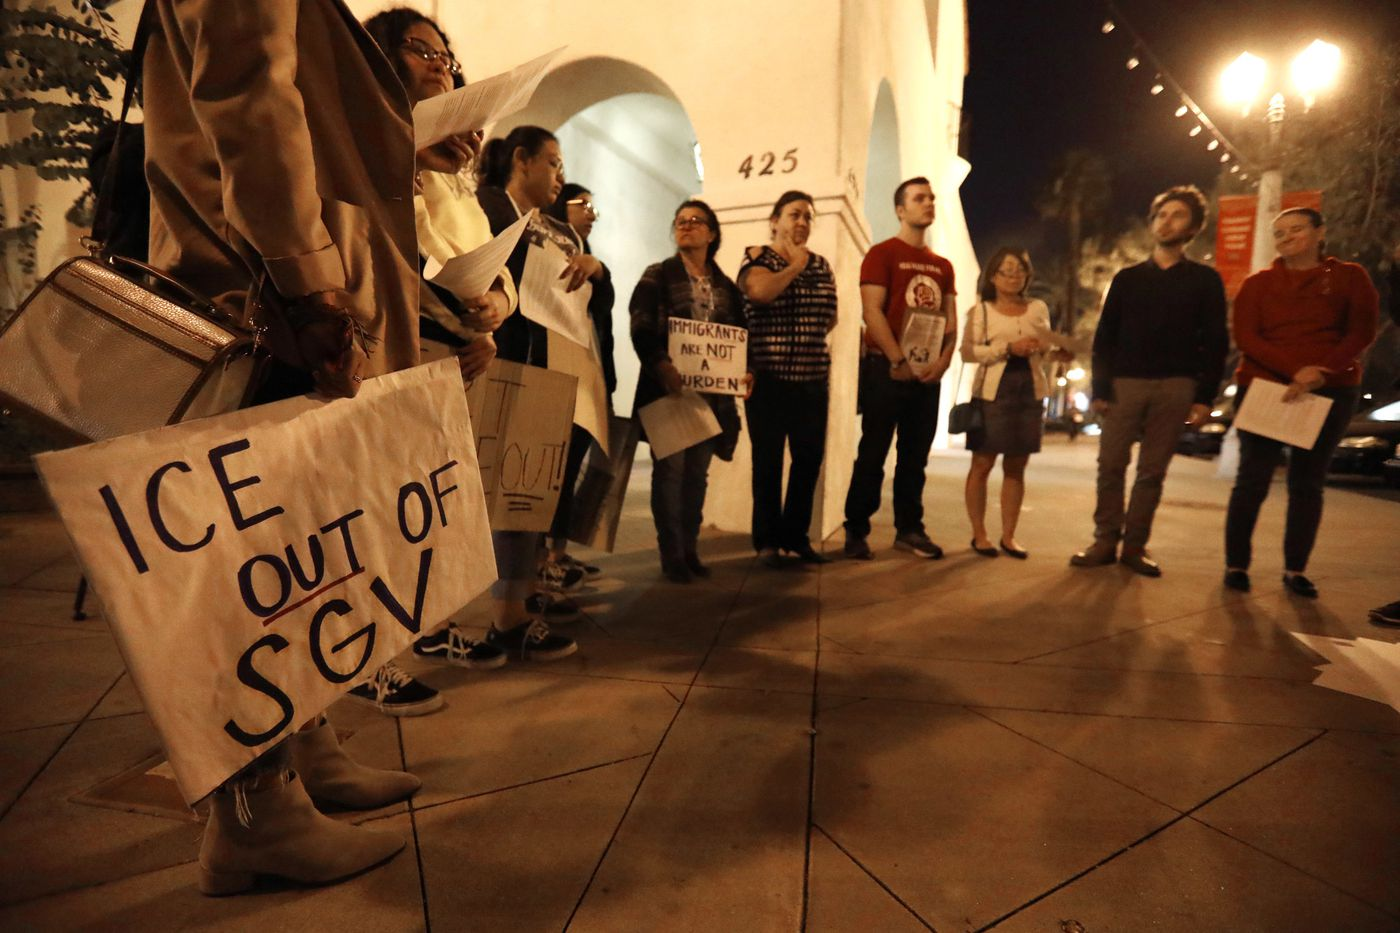 San Gabriel becomes the latest California city to withdraw from ICE collaborations